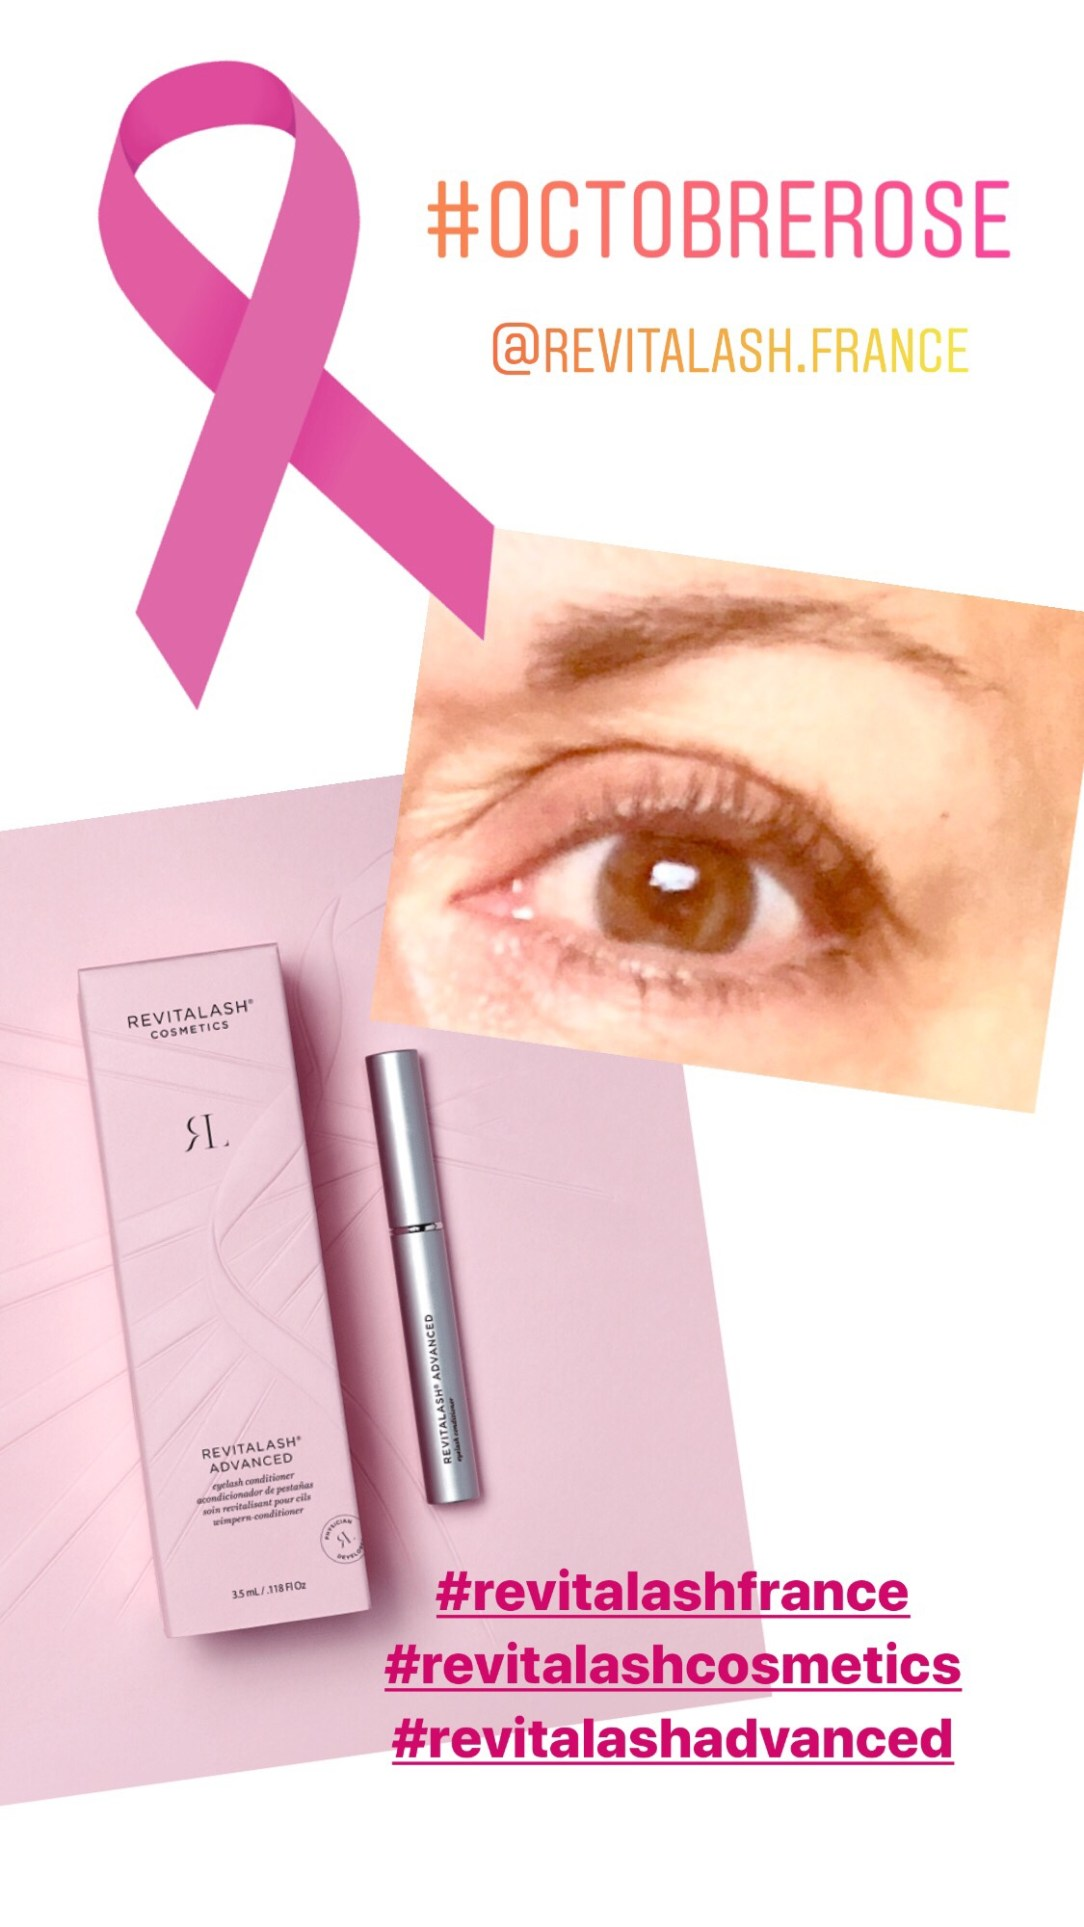 cils épais, produit pour les cils, revitalashadvanced, revitalashcosmetics, revitalashfrance, Blogueuse du sud, cils, Revitalash advanced, faire pousser les cils, teamover50